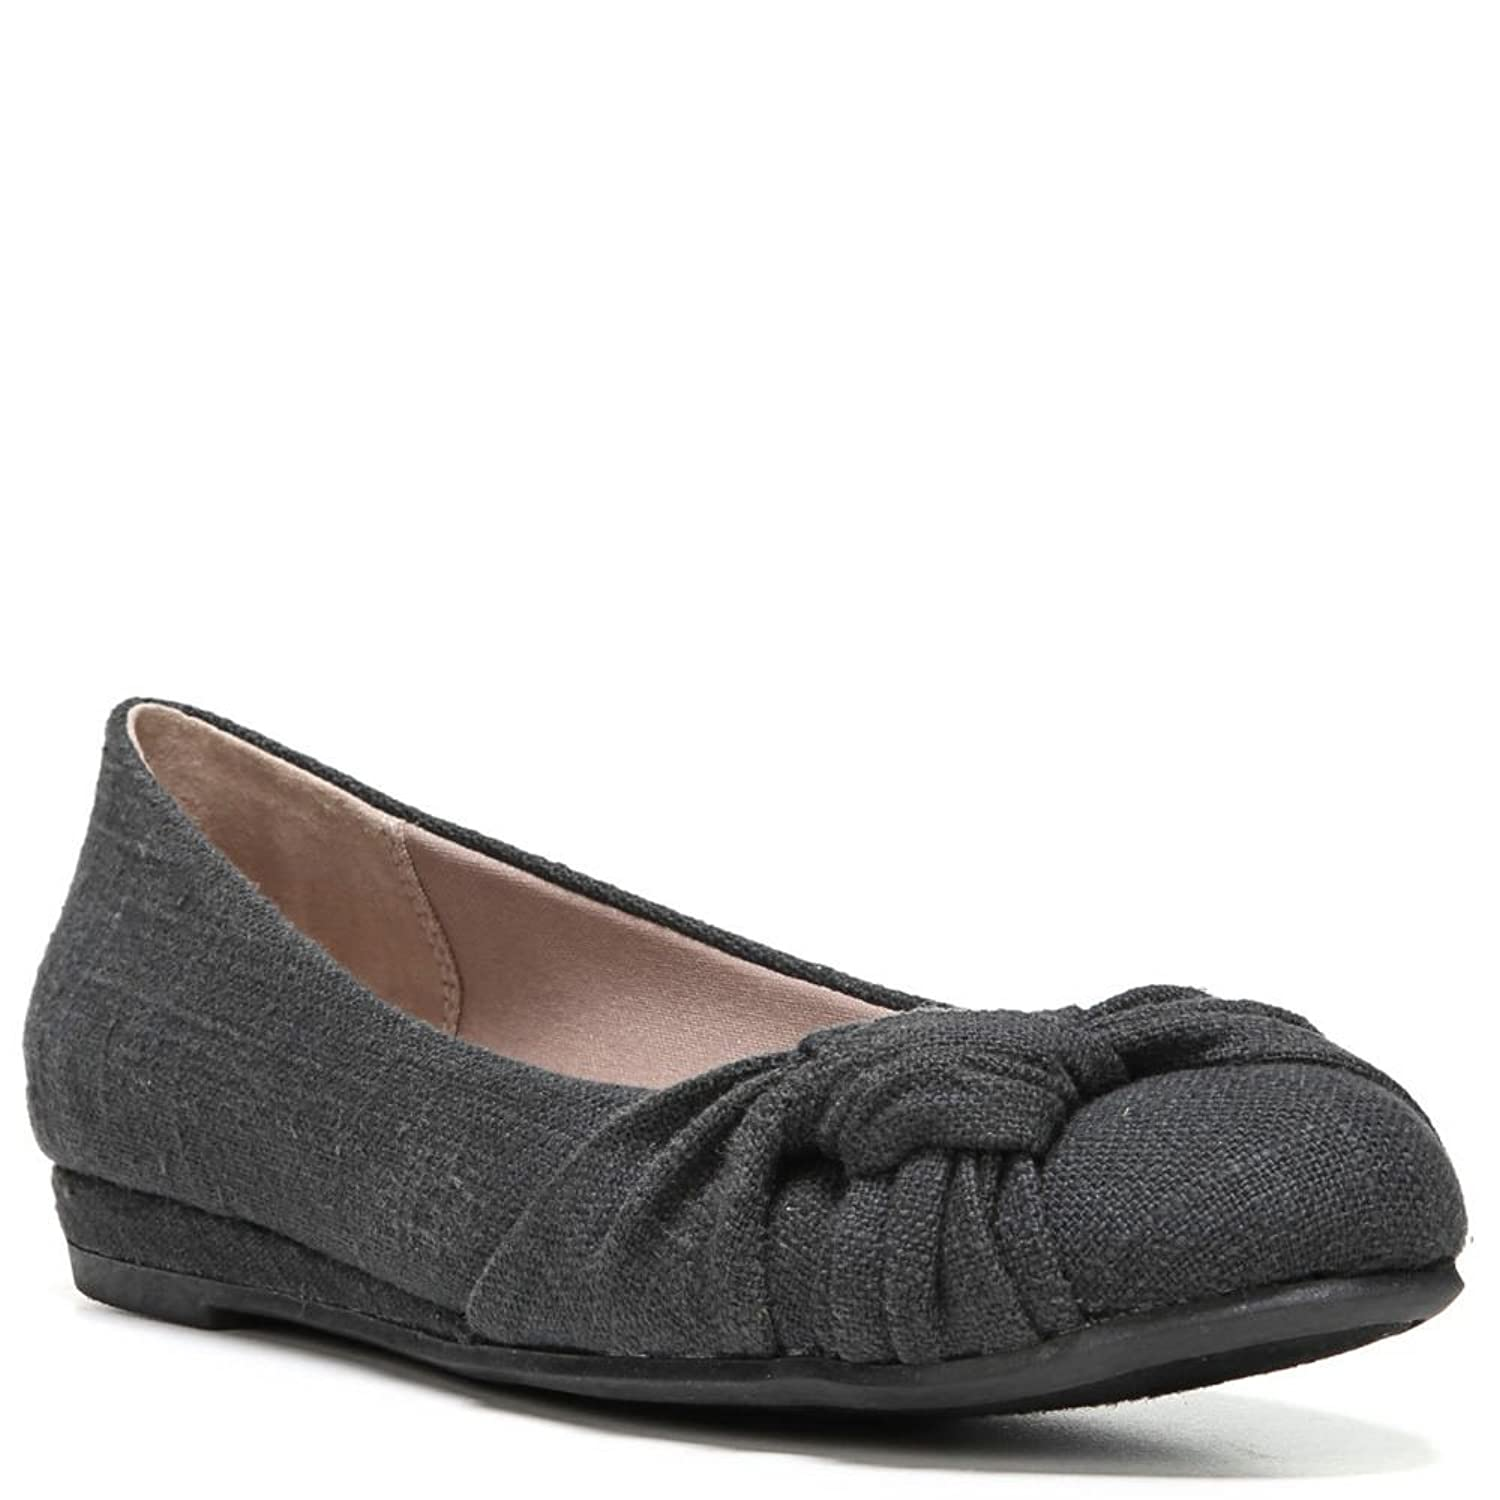 309e58dc406 Fergalicious Sloane Women's Slip On 9.5 B(M) US Black 80%OFF ...